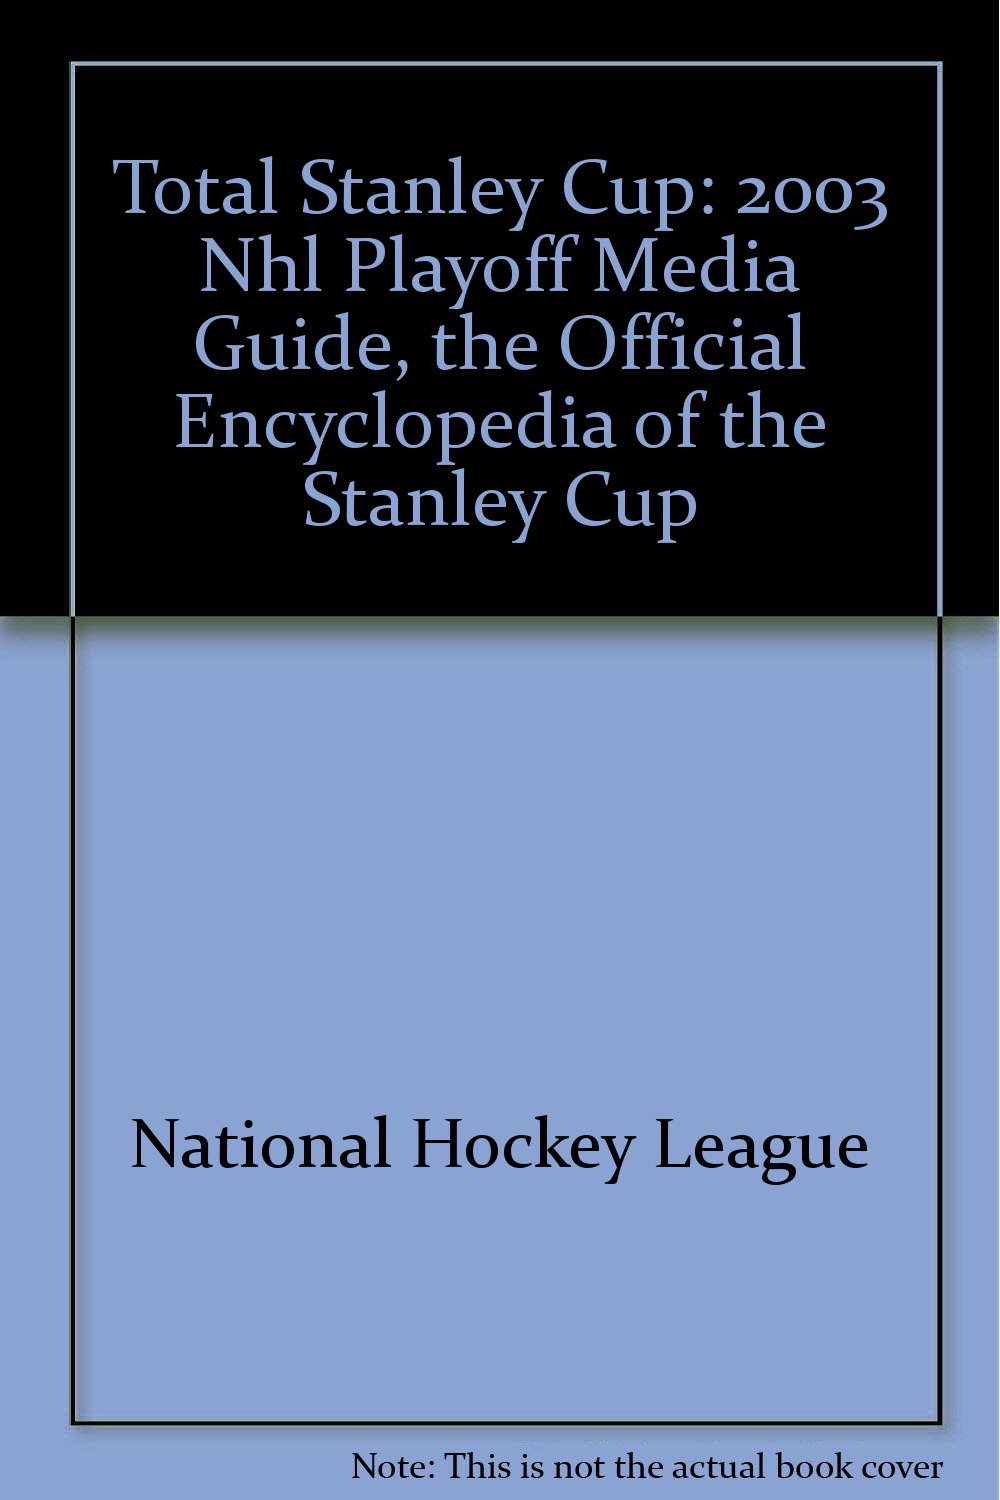 Total Stanley Cup: 2003 NHL Playoff Media Guide, the Official Encyclopdeia of the Stanley Cup ebook